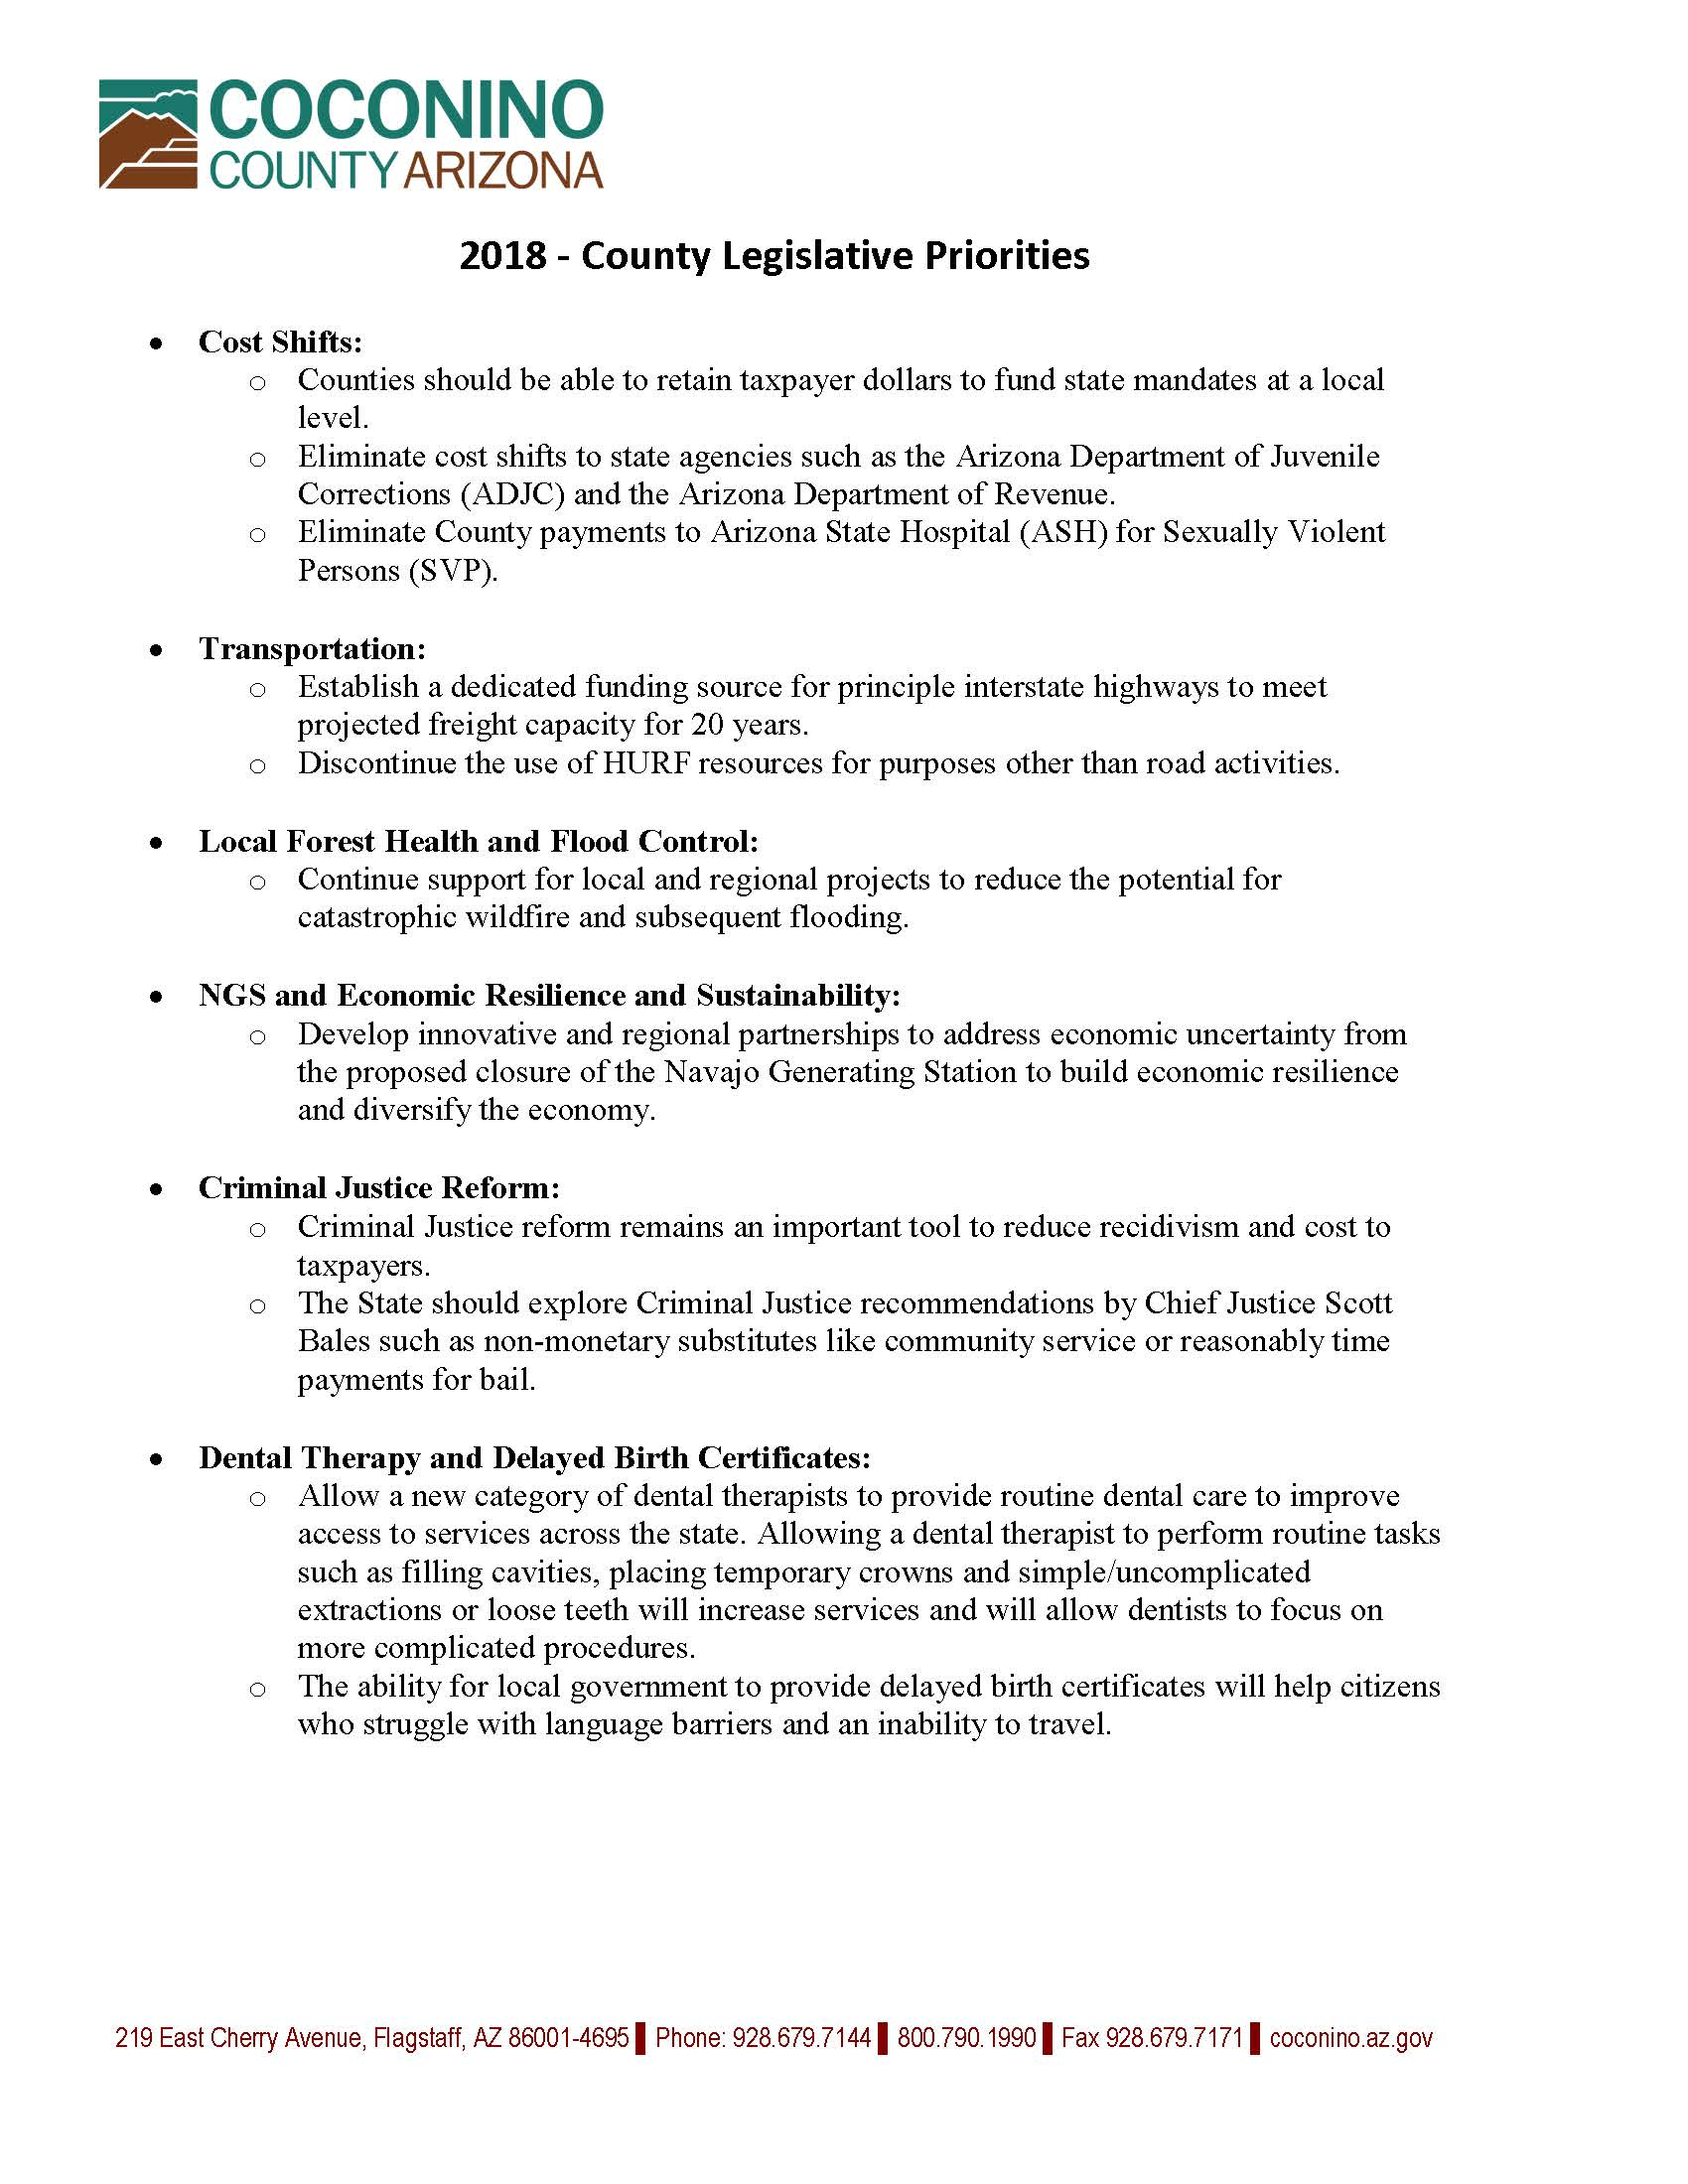 2018-Coconino County State- Legislative Priorities